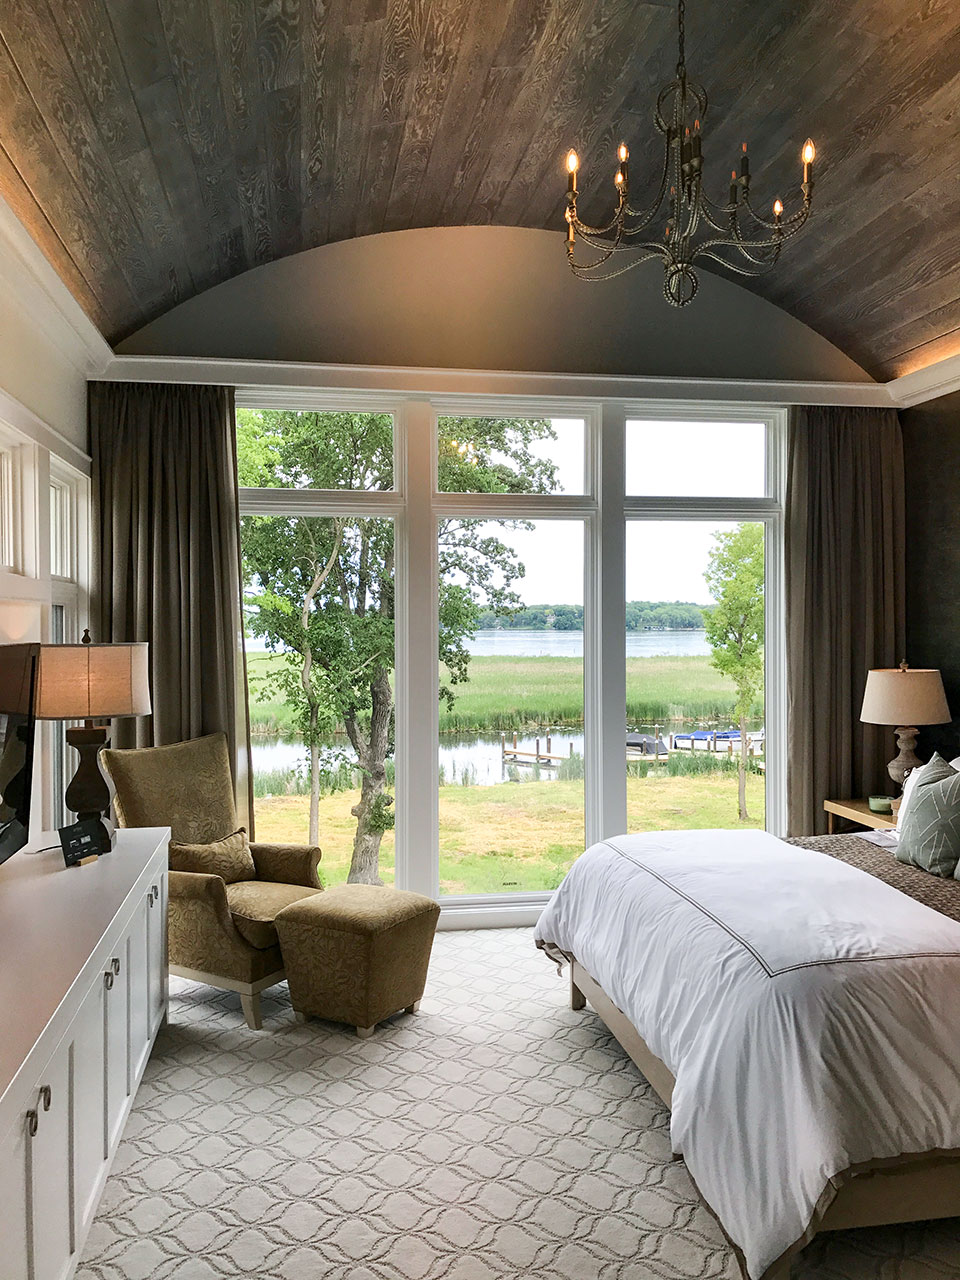 artisan home tour master bedroom suite with barrel vaulted gray reclaimed wood ceiling - beautiful window wall with lake views